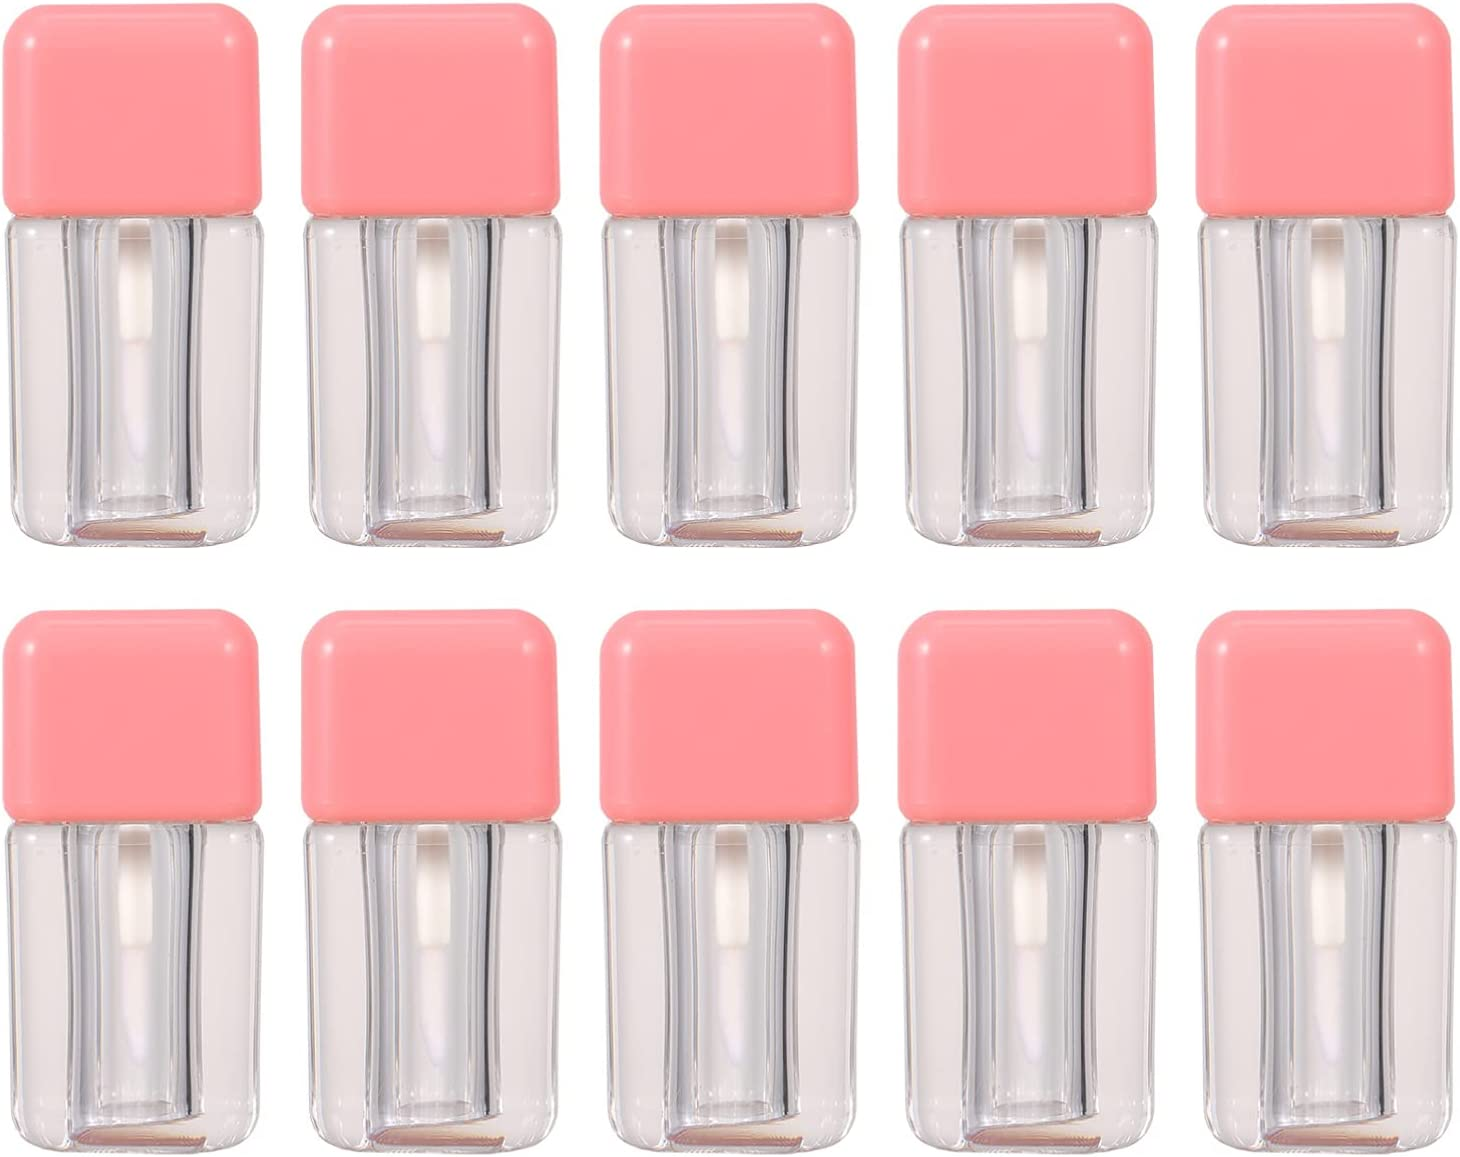 Beaupretty 10pcs Empty Lip Gloss Refillable Balm Tub Bottles Popular overseas Opening large release sale